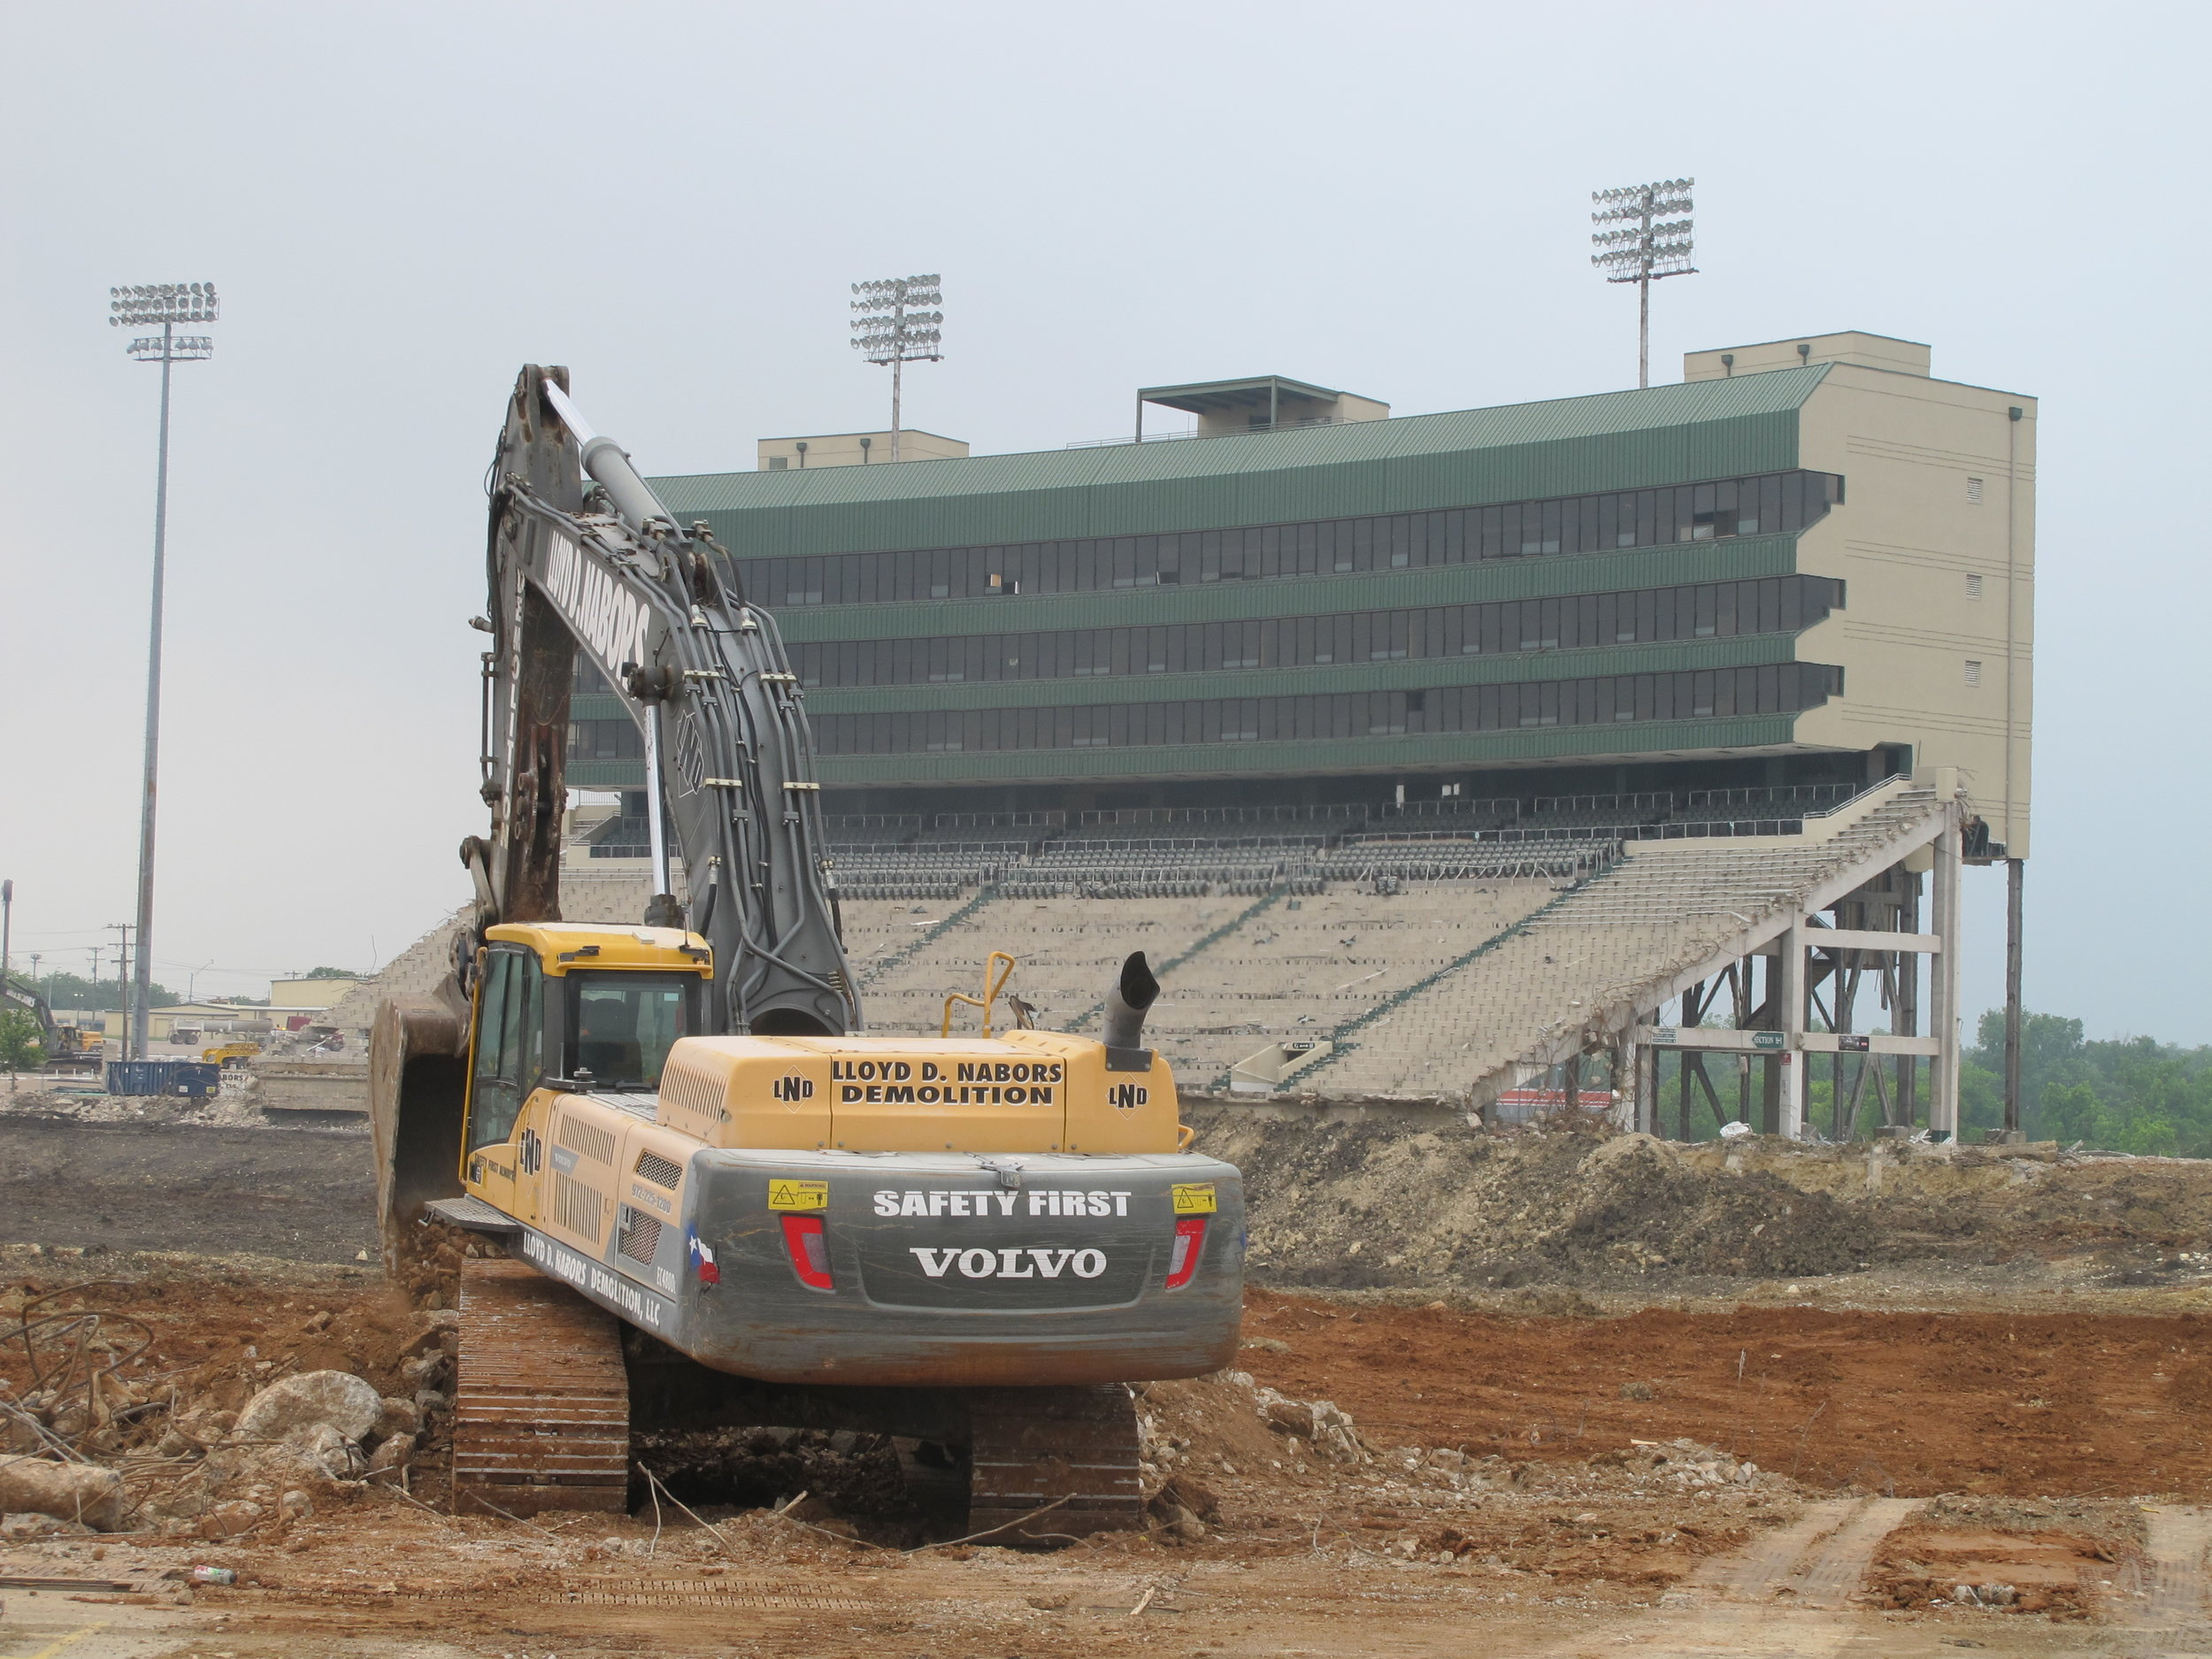 Floyd Casey Stadium, the former home of the Baylor football team, was demolished in 2016 and is now subject to a proposed housing development on the site.